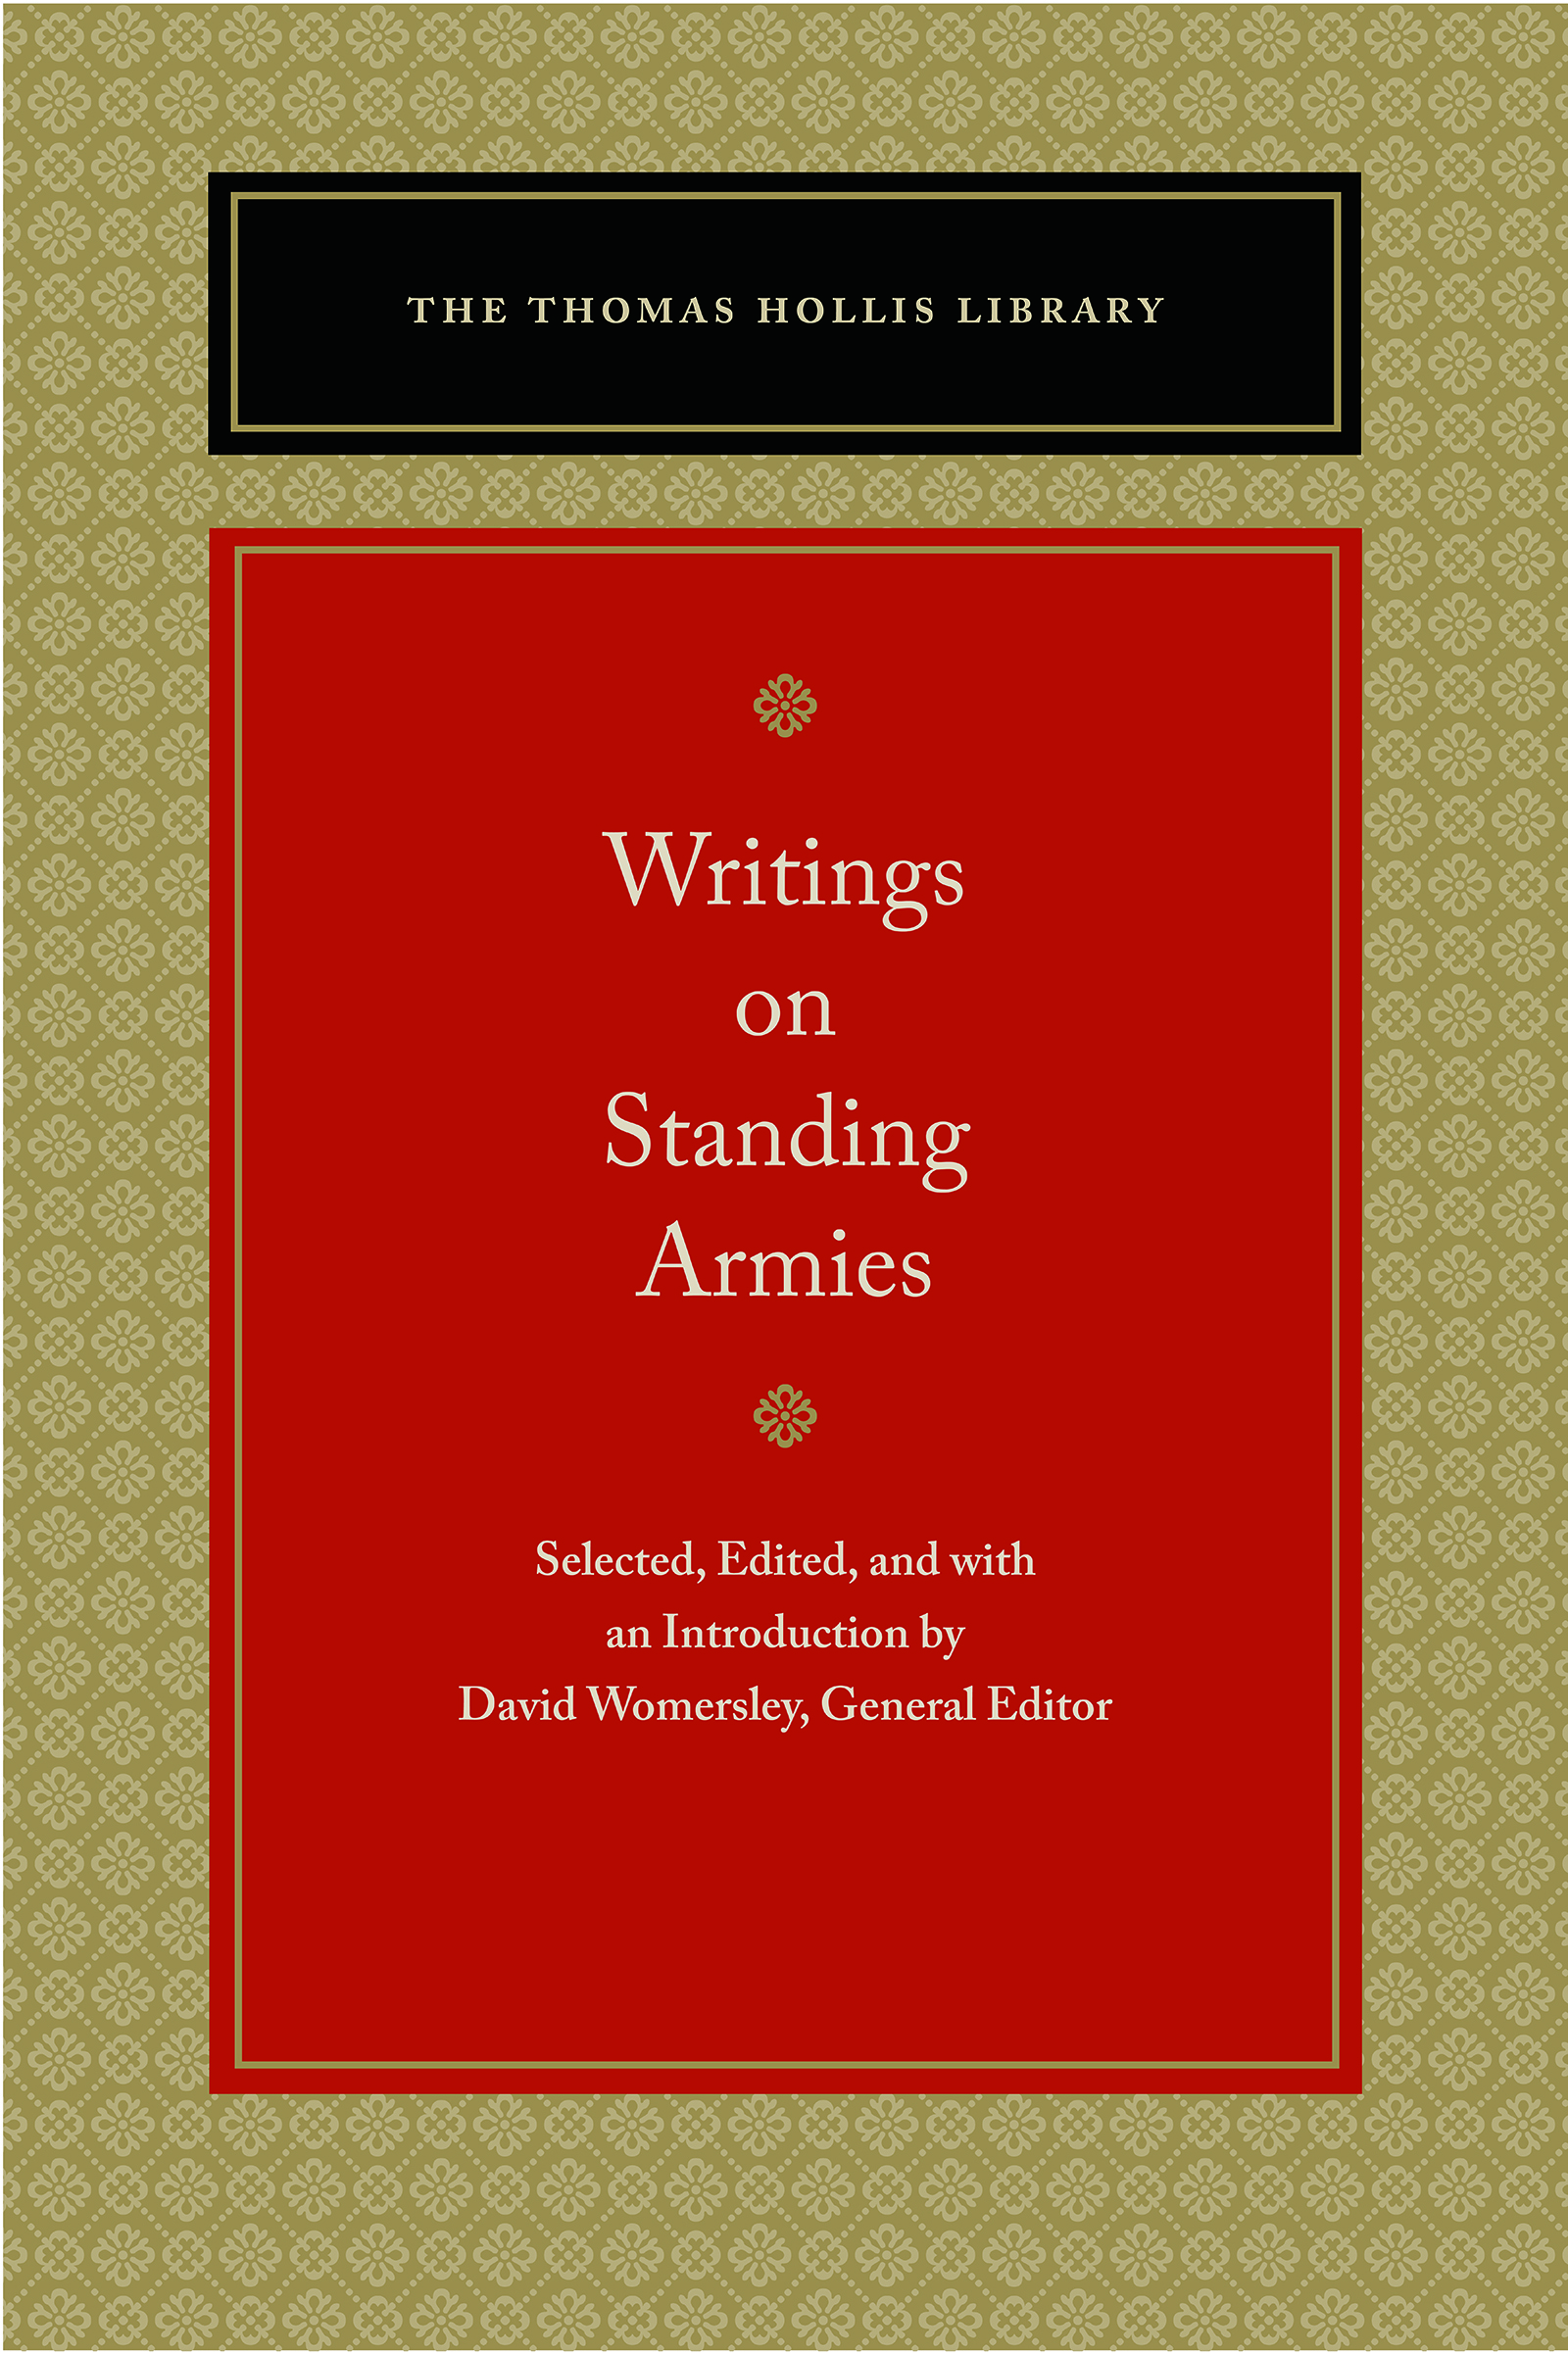 Writings on Standing Armies